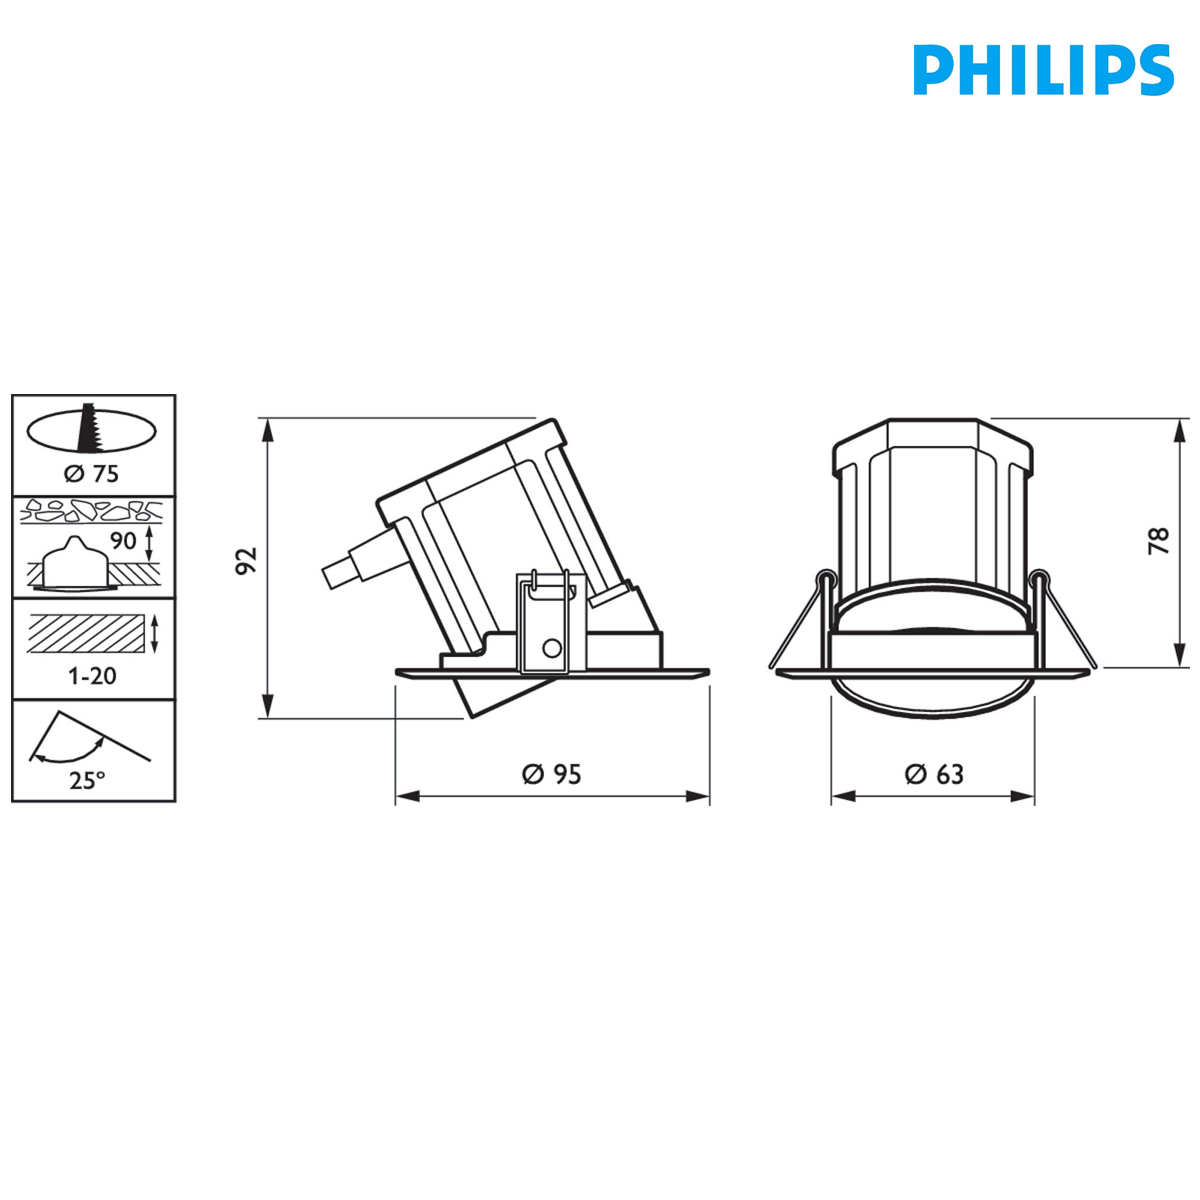 Spot Led Exterieur Philips Spot Encastré à Led Philips Rs011b Led8 40 830 Psr Wh